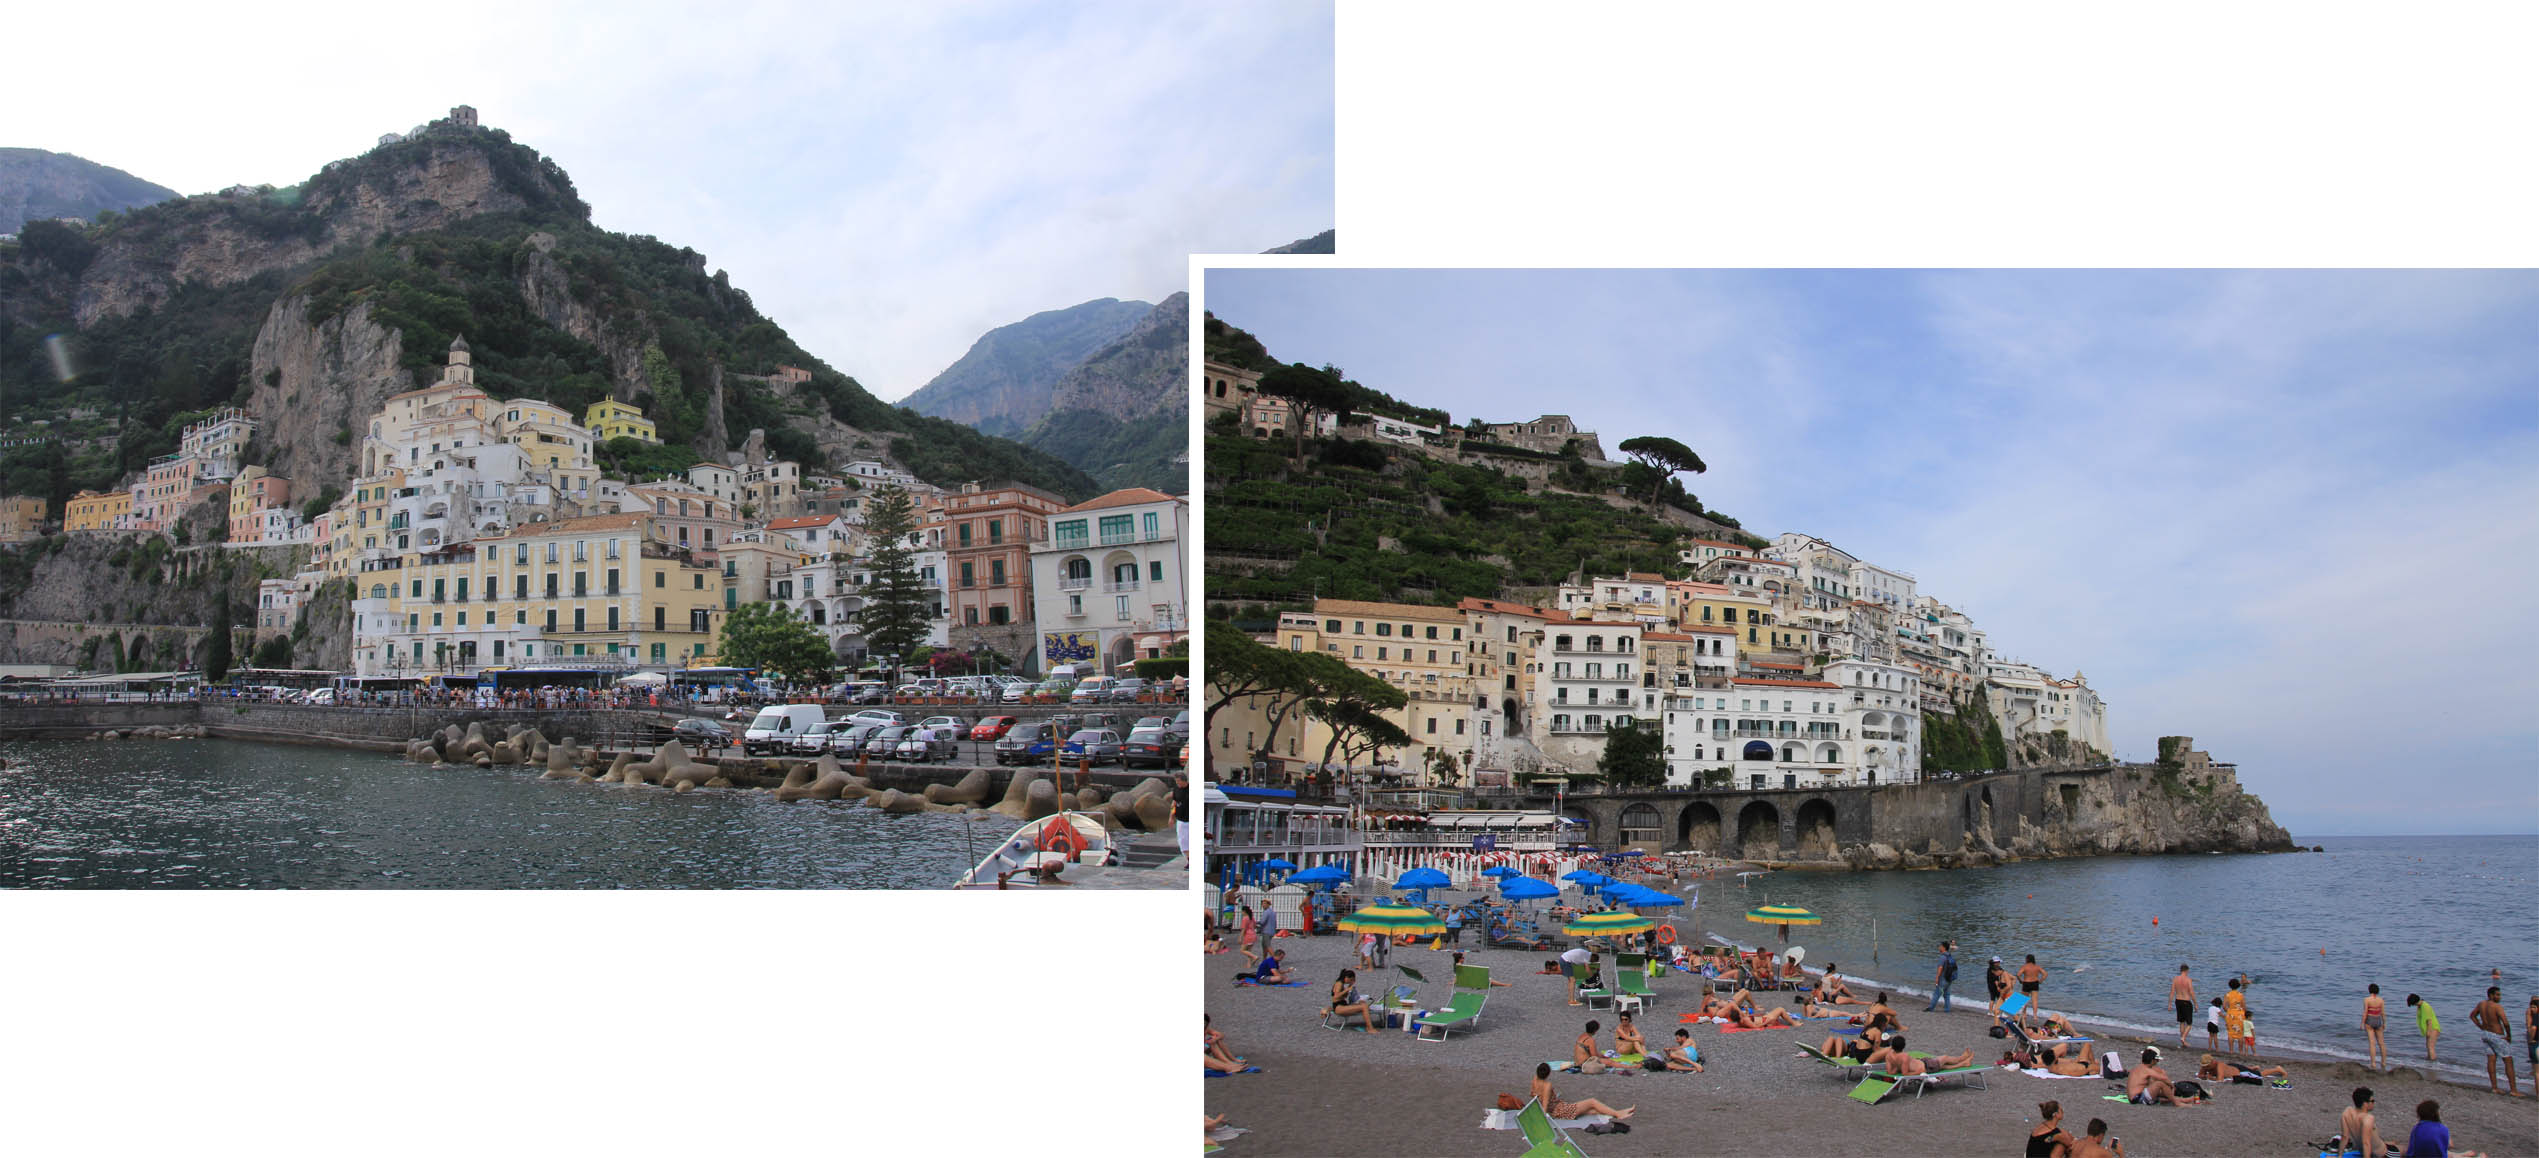 Promenade and beach at Amalfi town